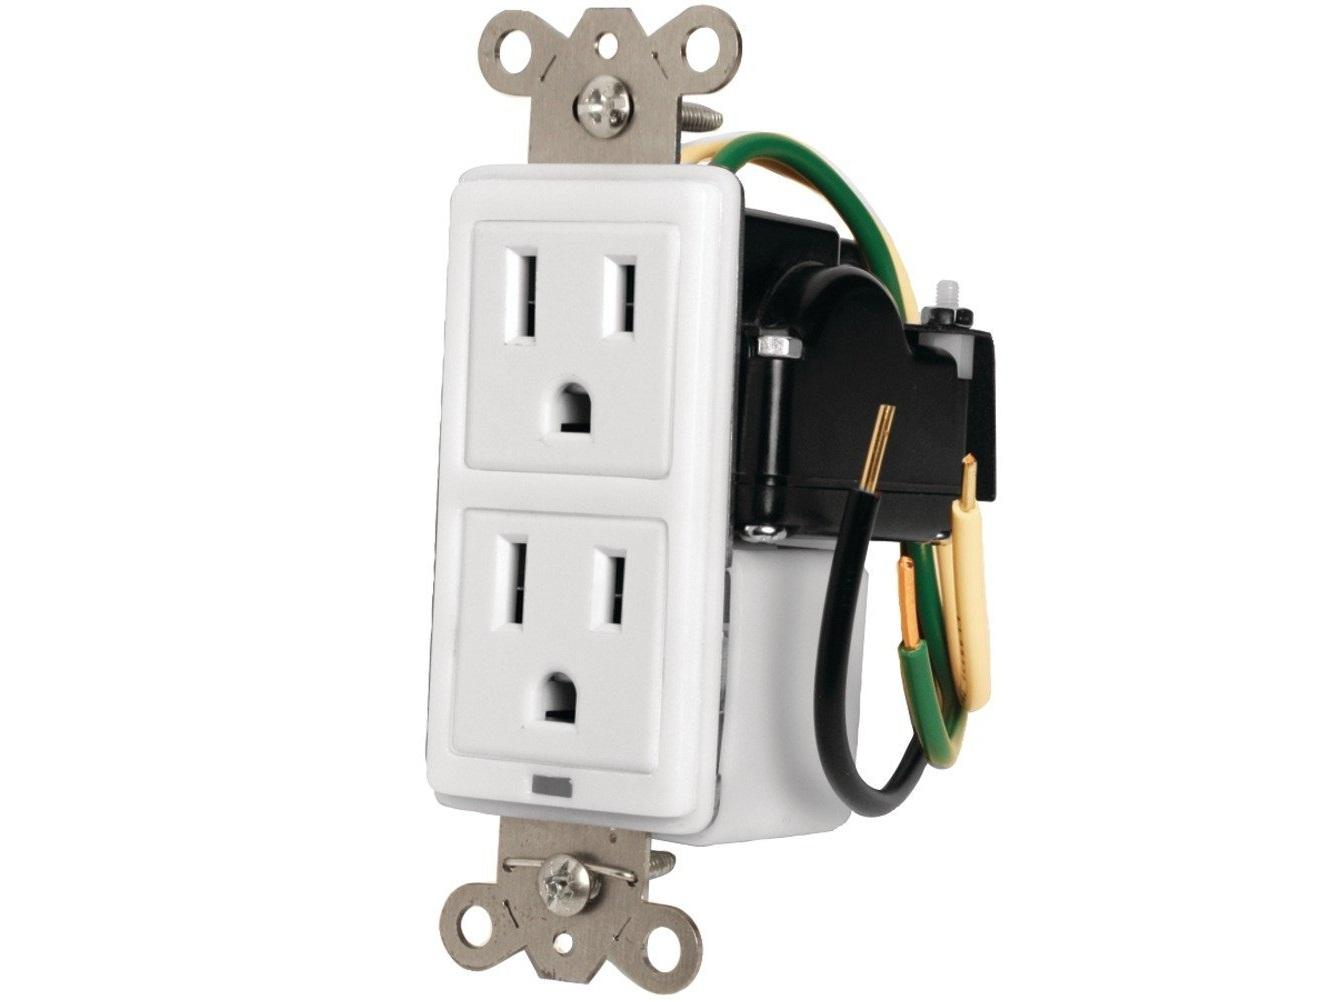 MIW-SURGE-1G Single Gang In-Wall Surge Protector by Panamax